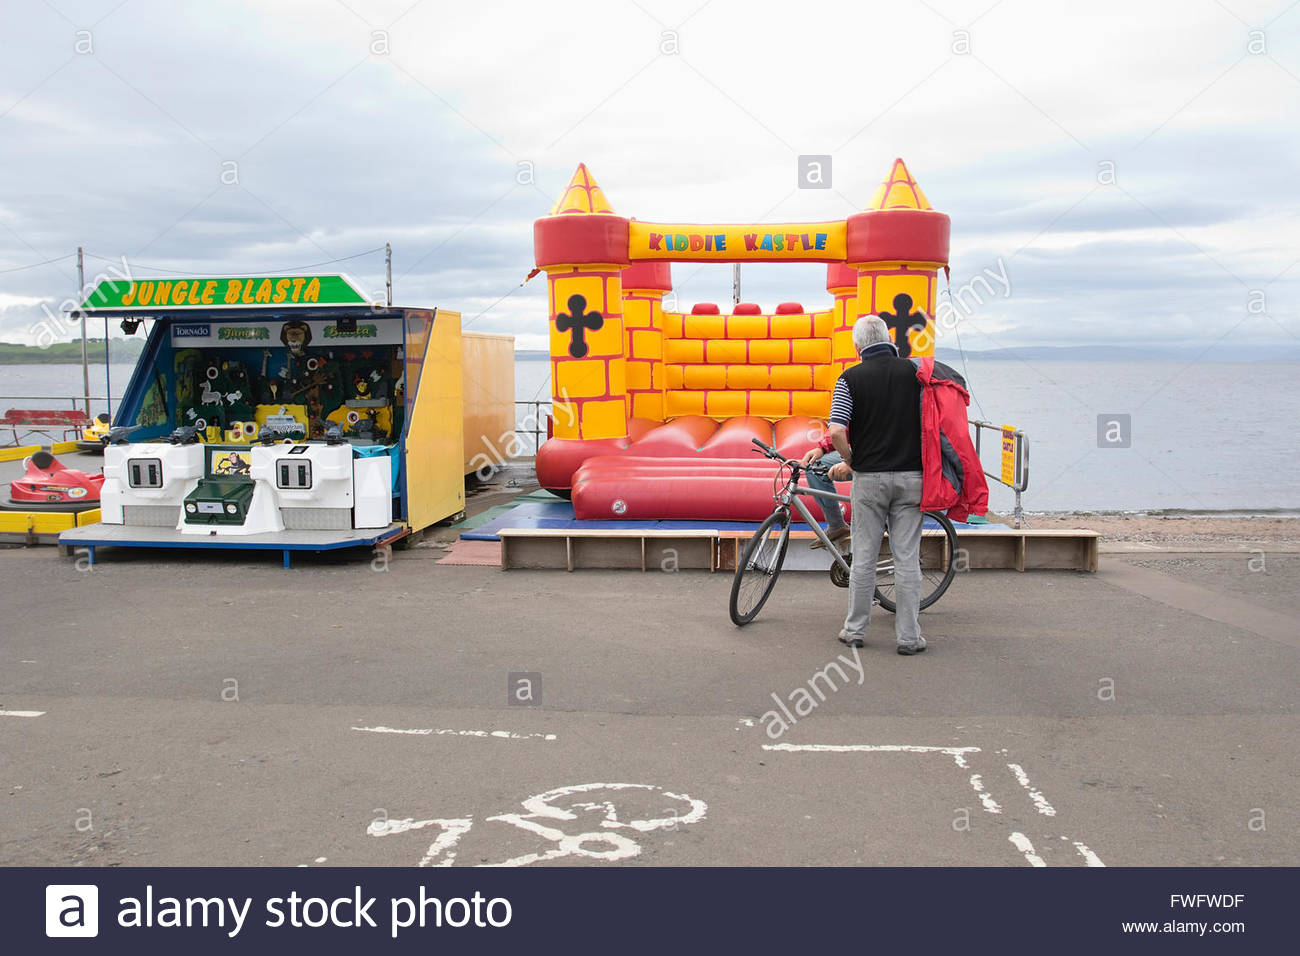 Senior men standing in front of bouncy castle at seaside - Stock Image